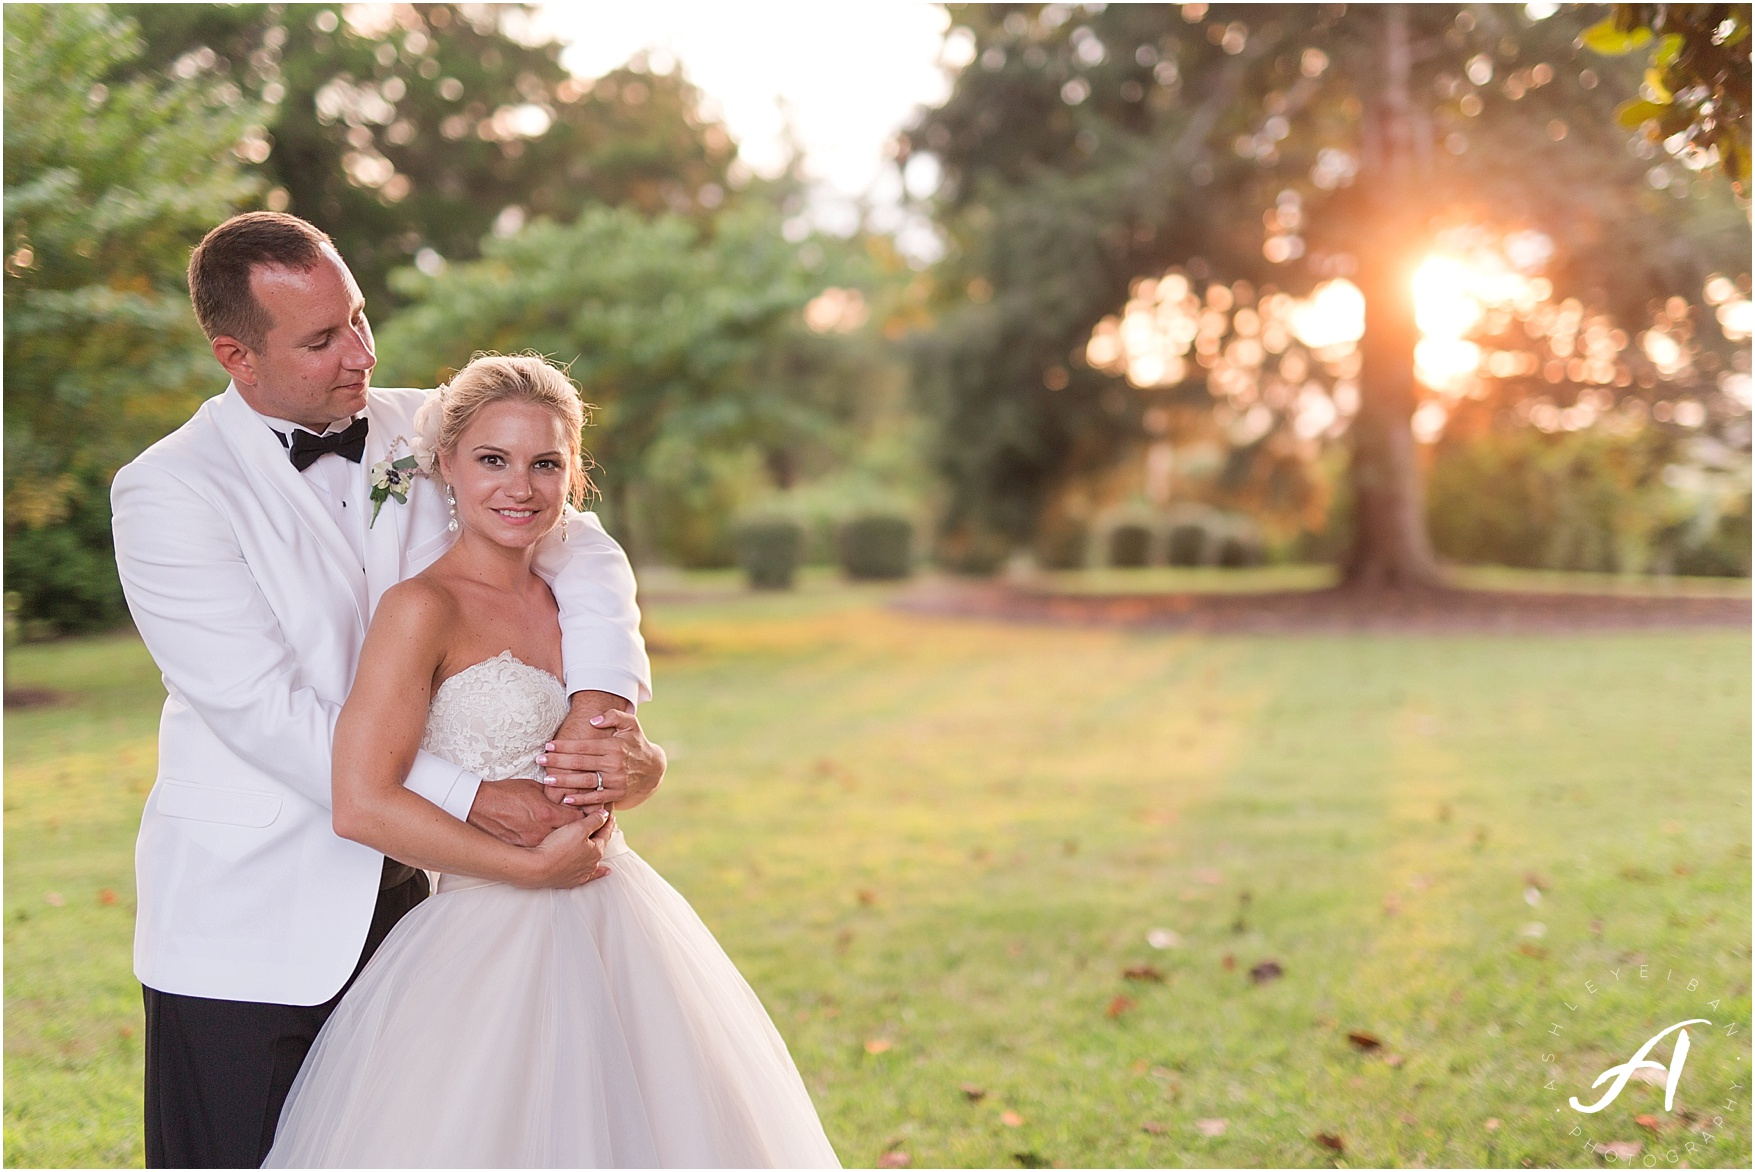 Elegant Blush and Gray Outdoor Wedding at The Trivium Estate in Forest, Virginia || Ashley Eiban Photography